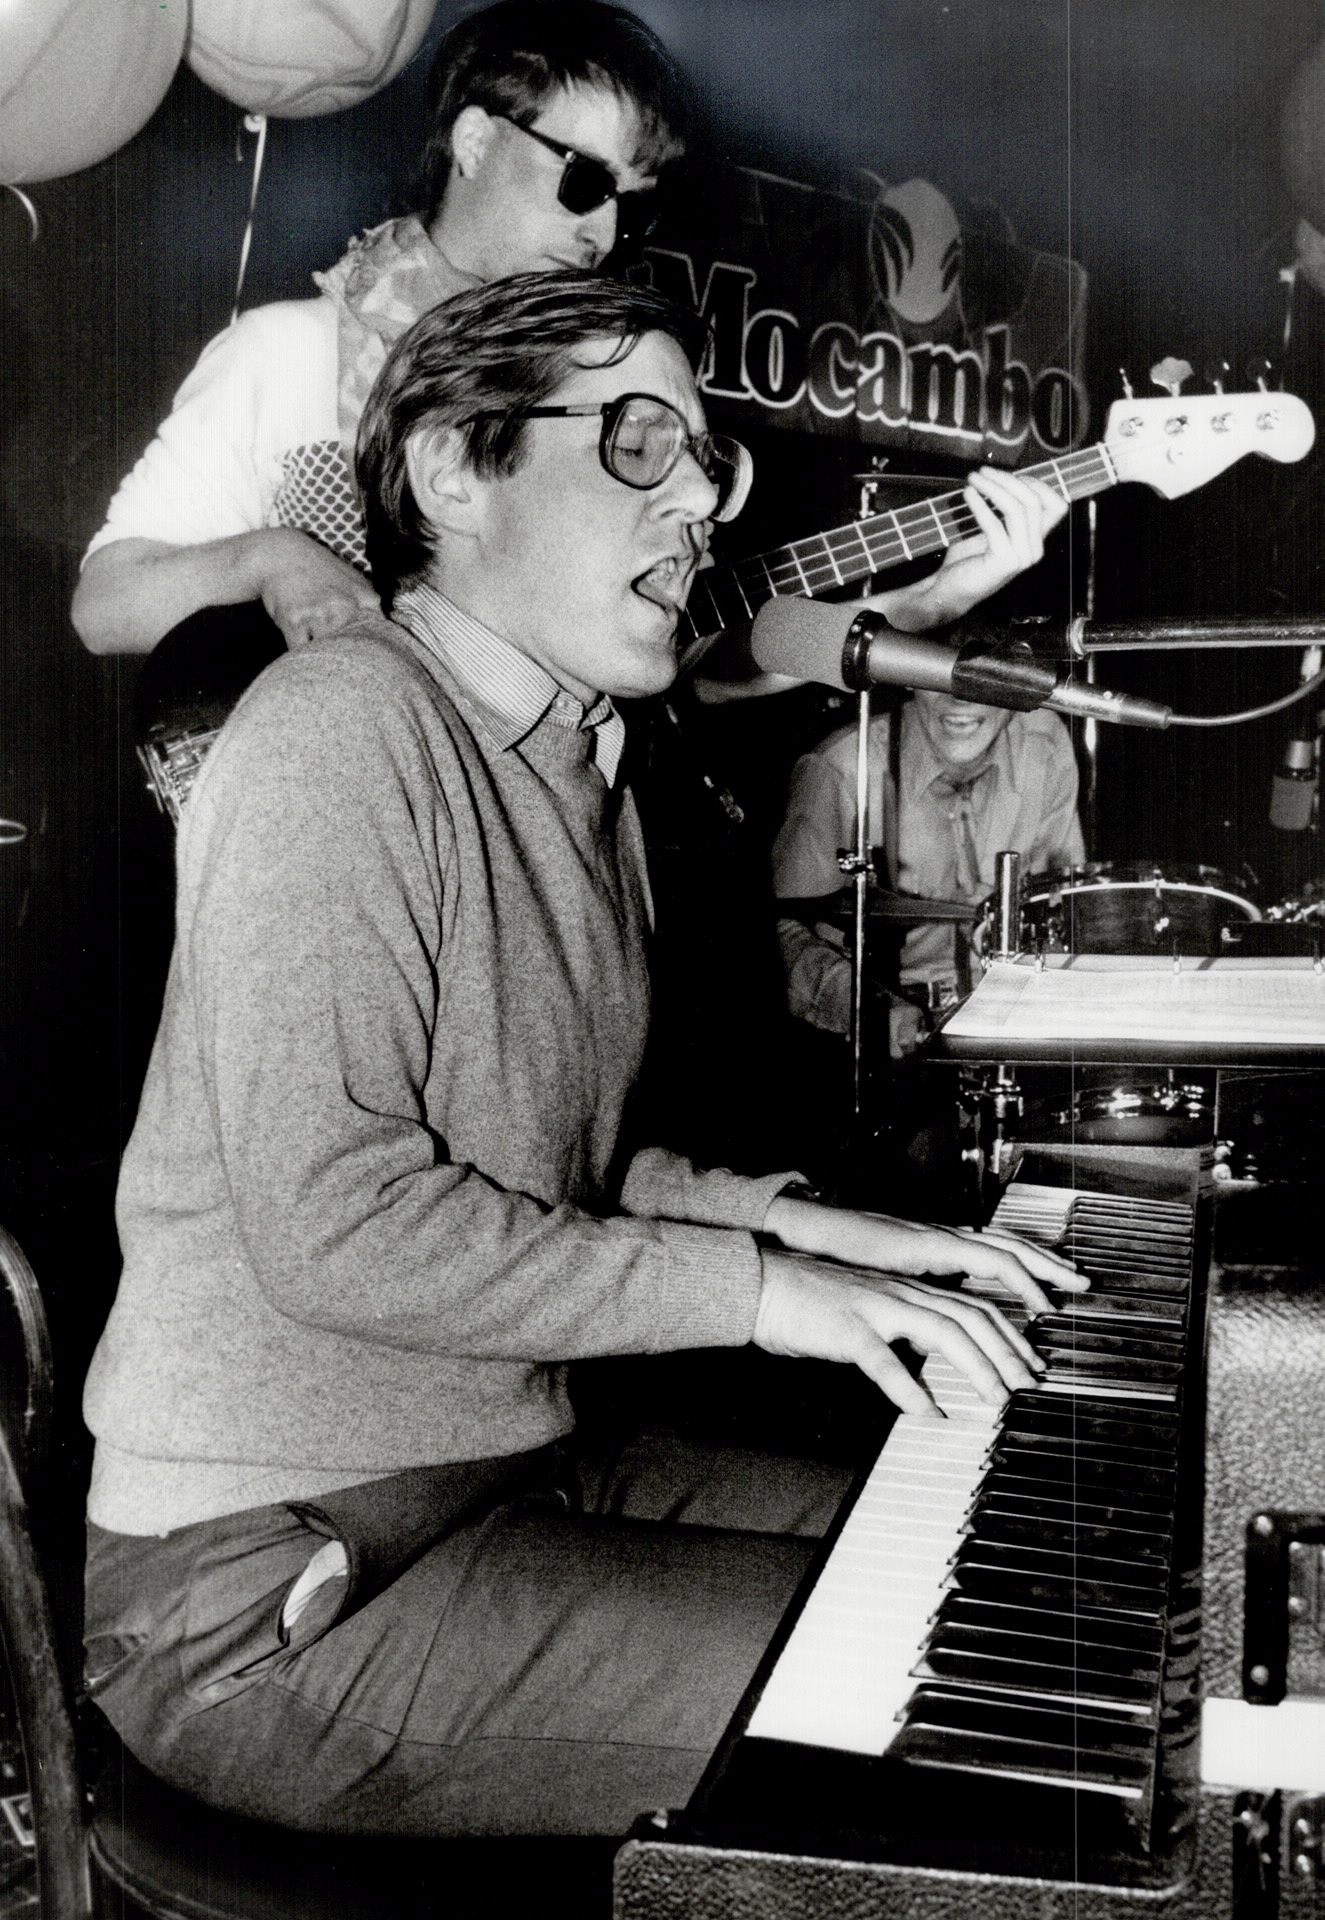 A middle-aged man is seated at a keyboard singing into a microphone. He is wearing a collared shirt and sweater. Behind him, a man with sunglasses plays guitar.